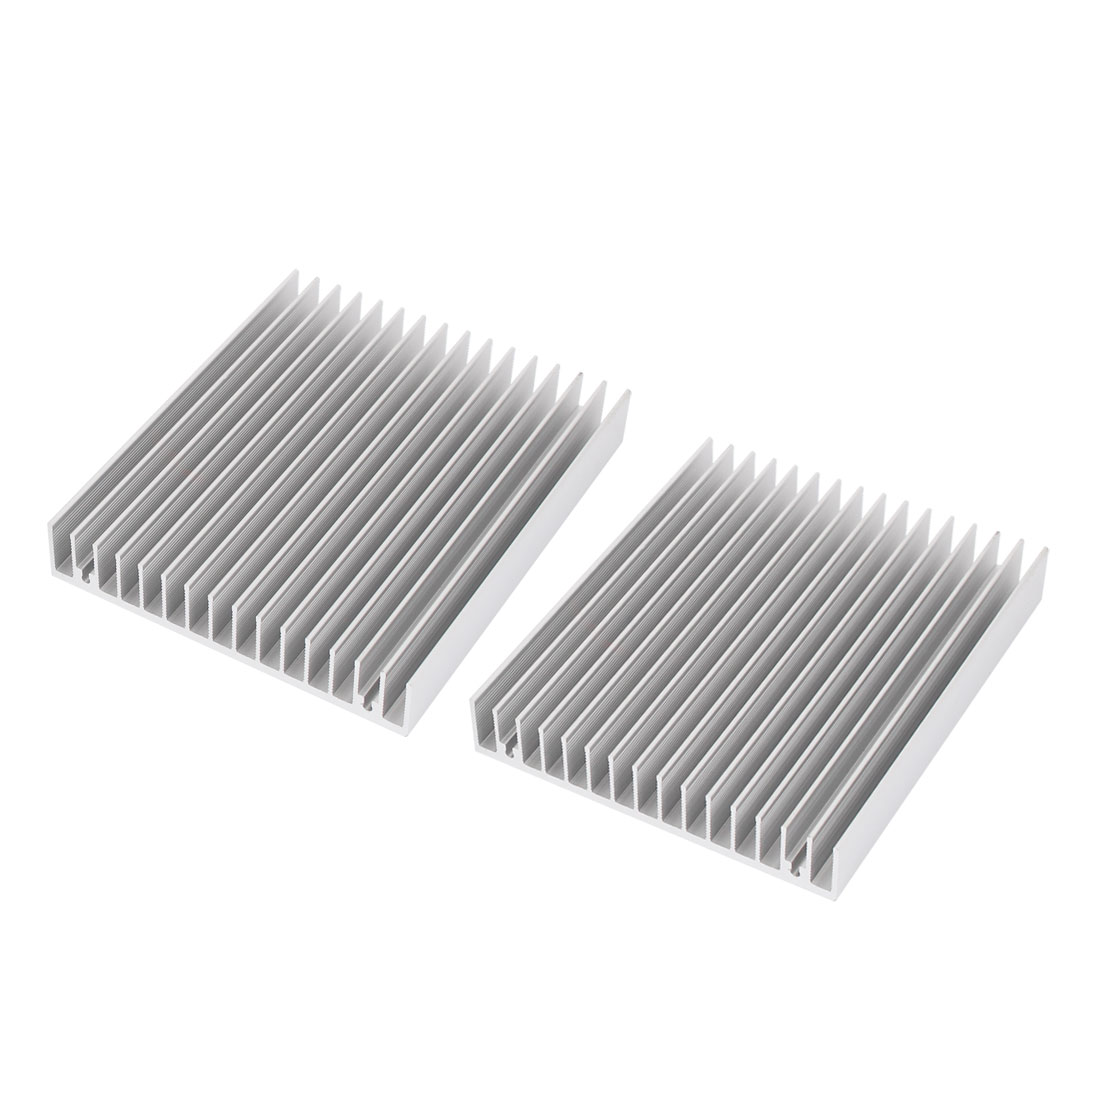 2 Pcs 120x100x18mm Aluminum CPU Heat Sink Heatsink Cooling Fin Silver Tone